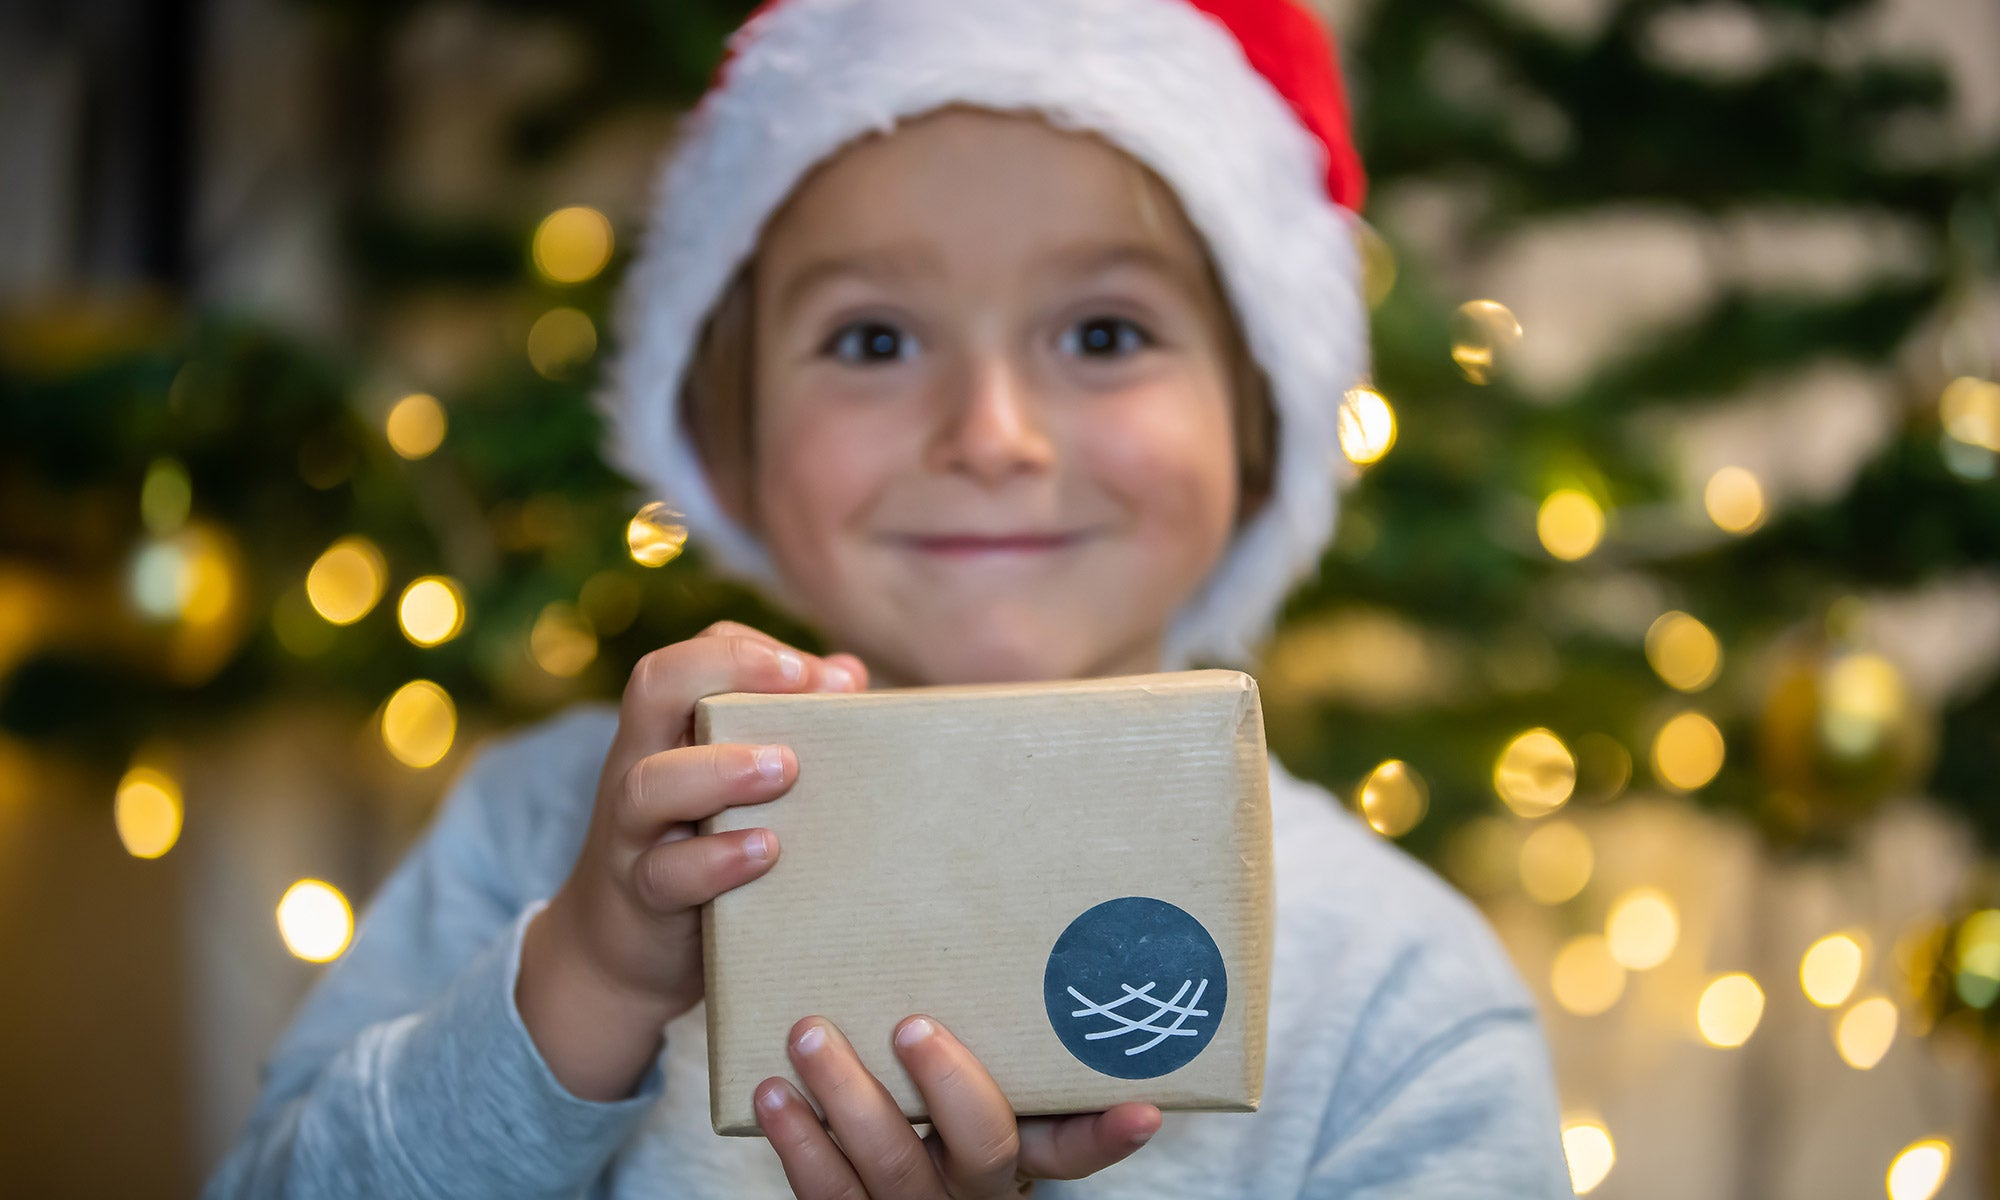 Boy holding christmas gift and smiling